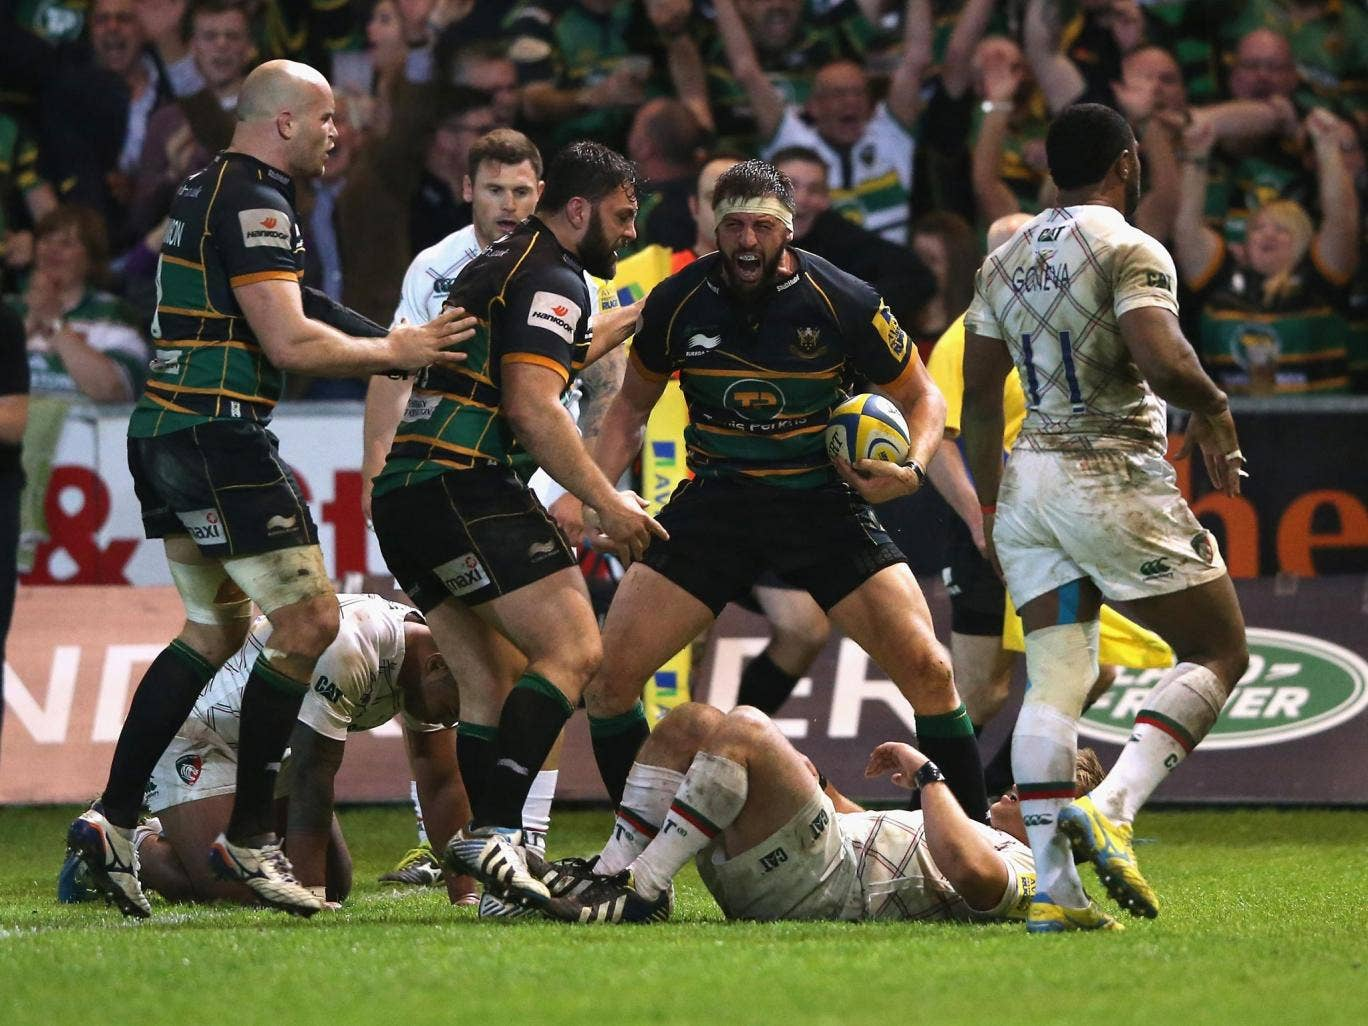 Tom Wood roars his delight after claiming the match-winning try last night